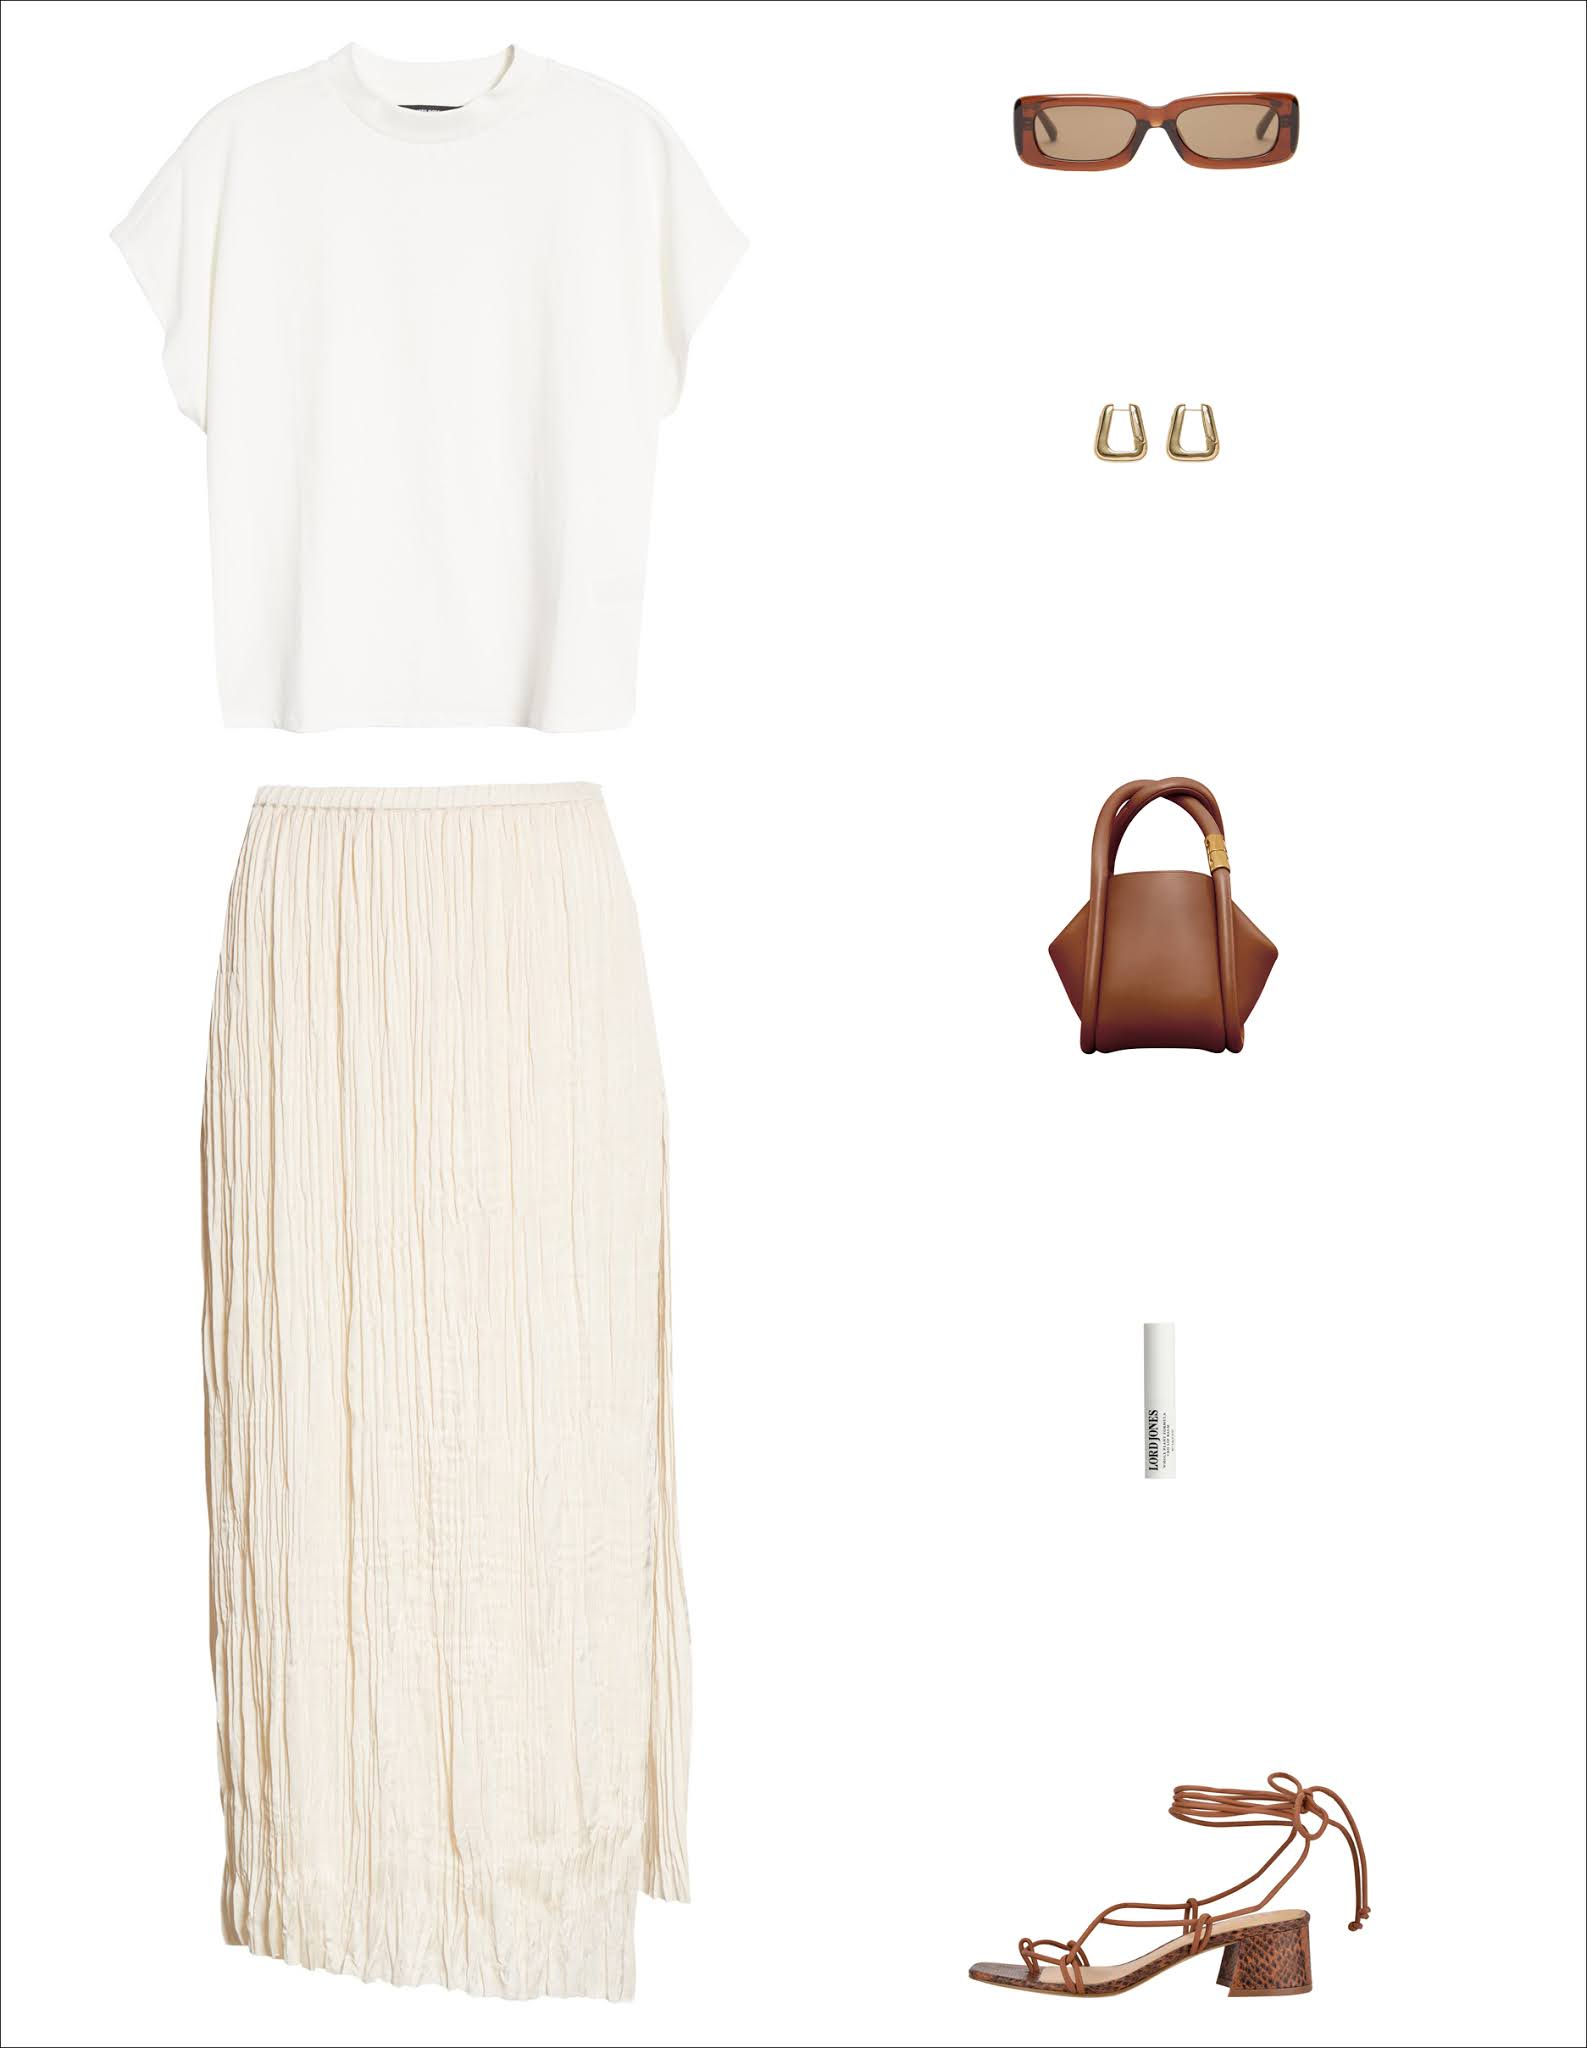 A Stylish Everyday Outfit Idea for Spring and Summer 2021 —$25 white top, rectangular sunglasses, Boyy bag, Lord Jones CBD lip balm, Vince pleated skirt, lace-up sandals